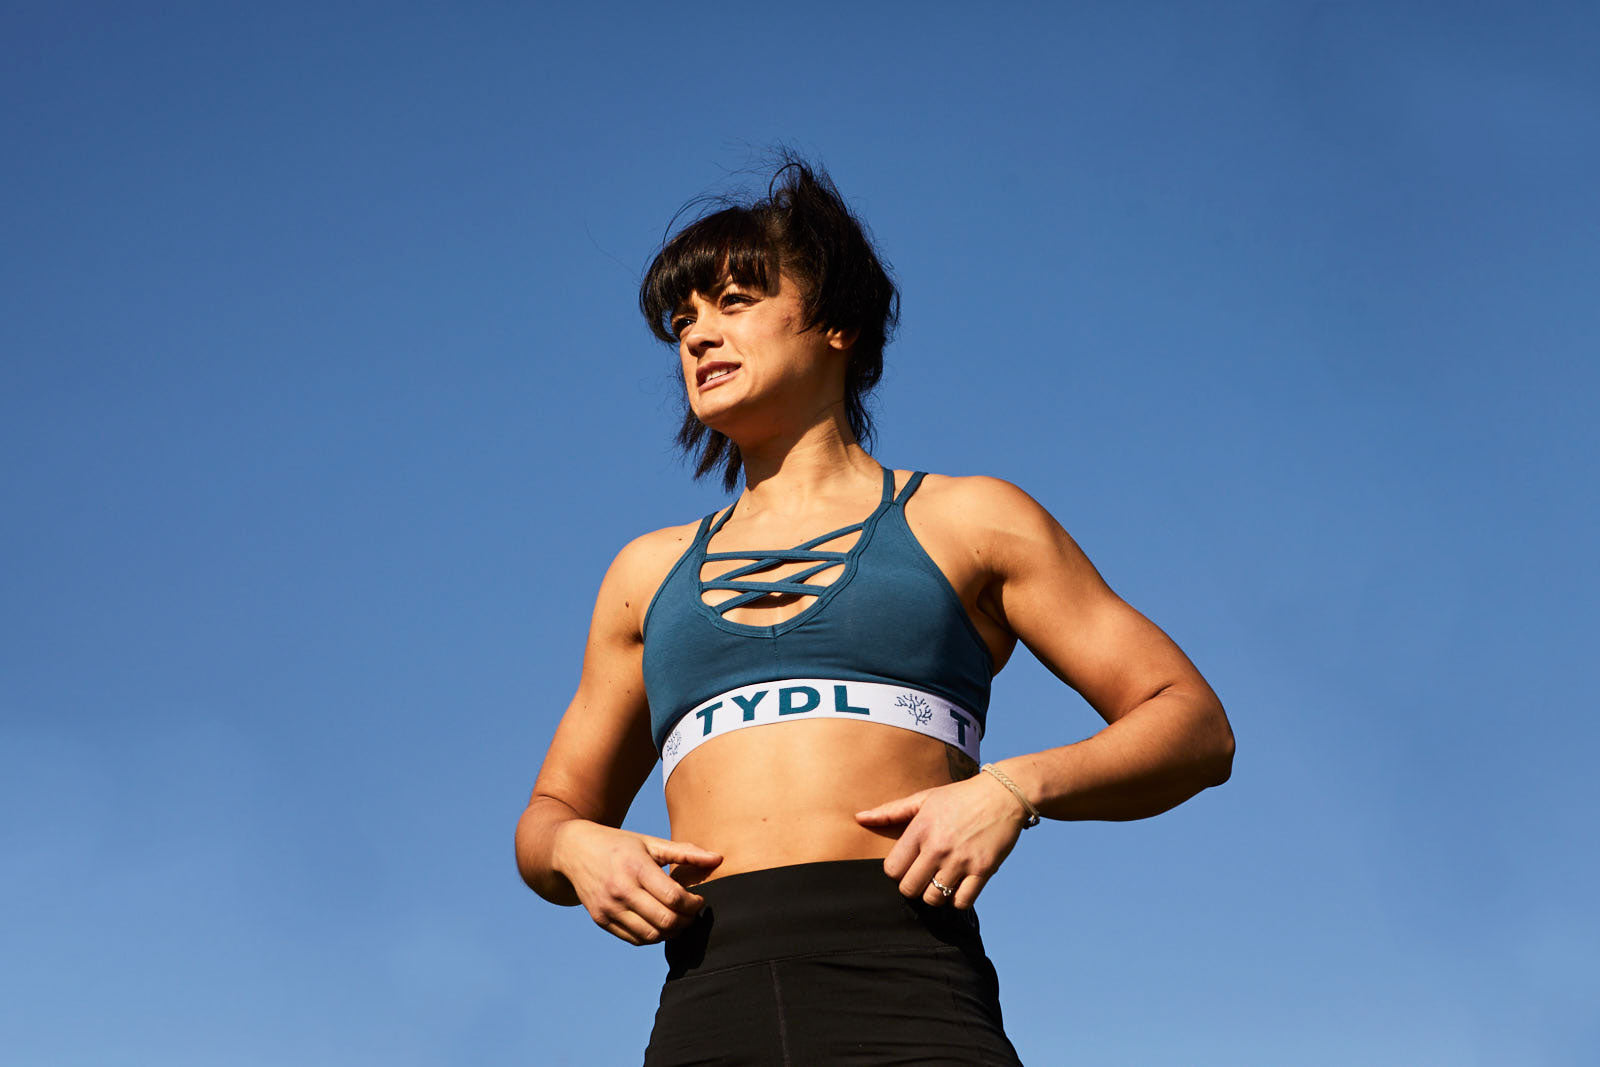 Women's Bamboo Sports Bra | TYDL